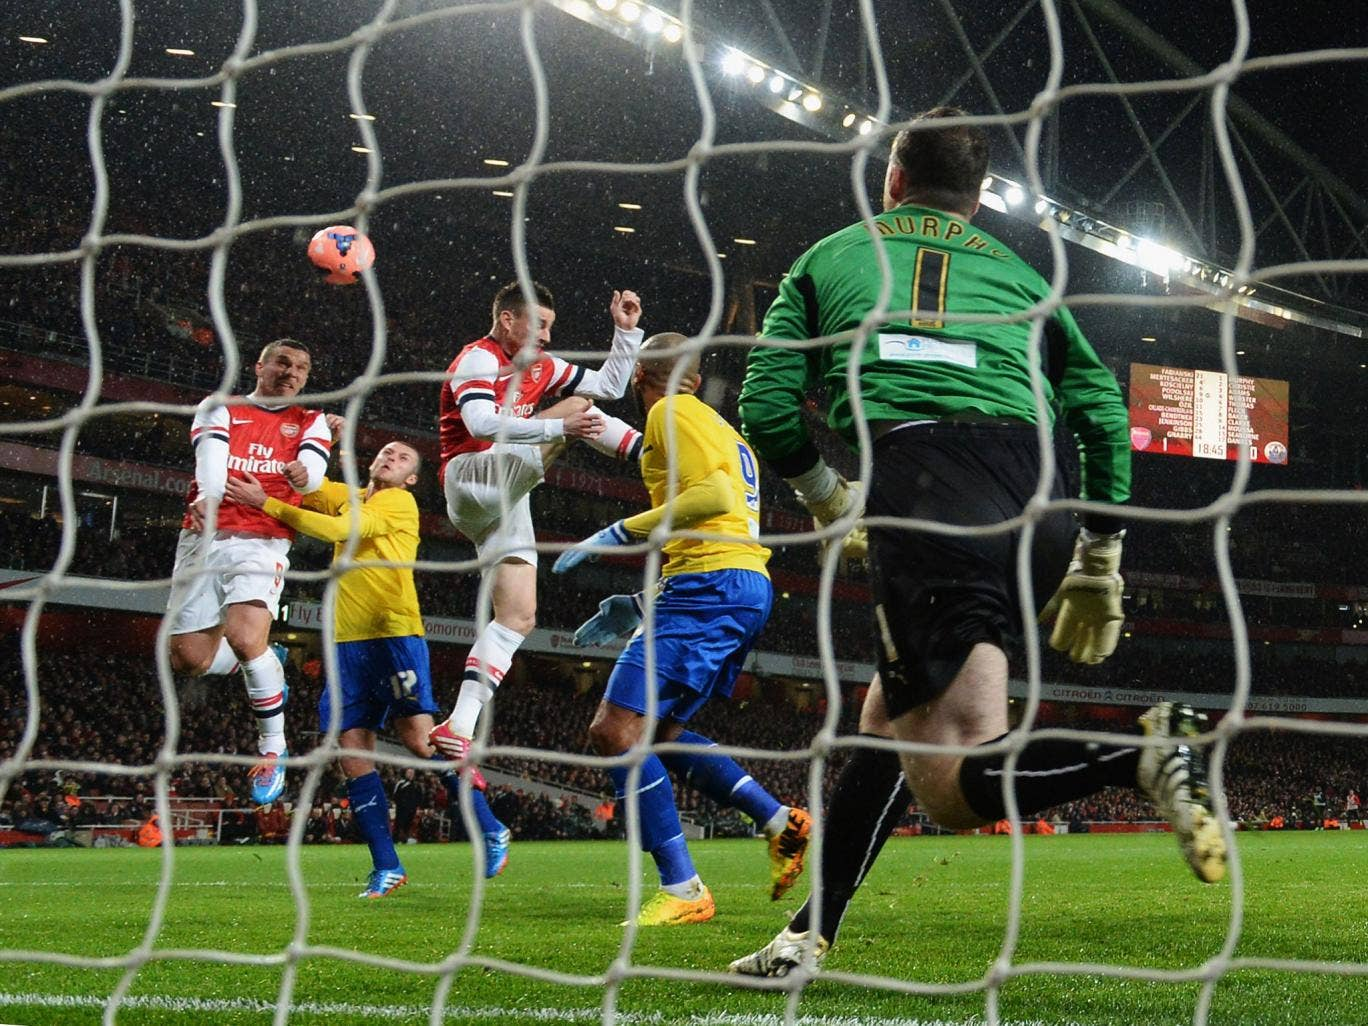 Lukas Podolski of Arsenal rises to score the second goal of the evening with a header